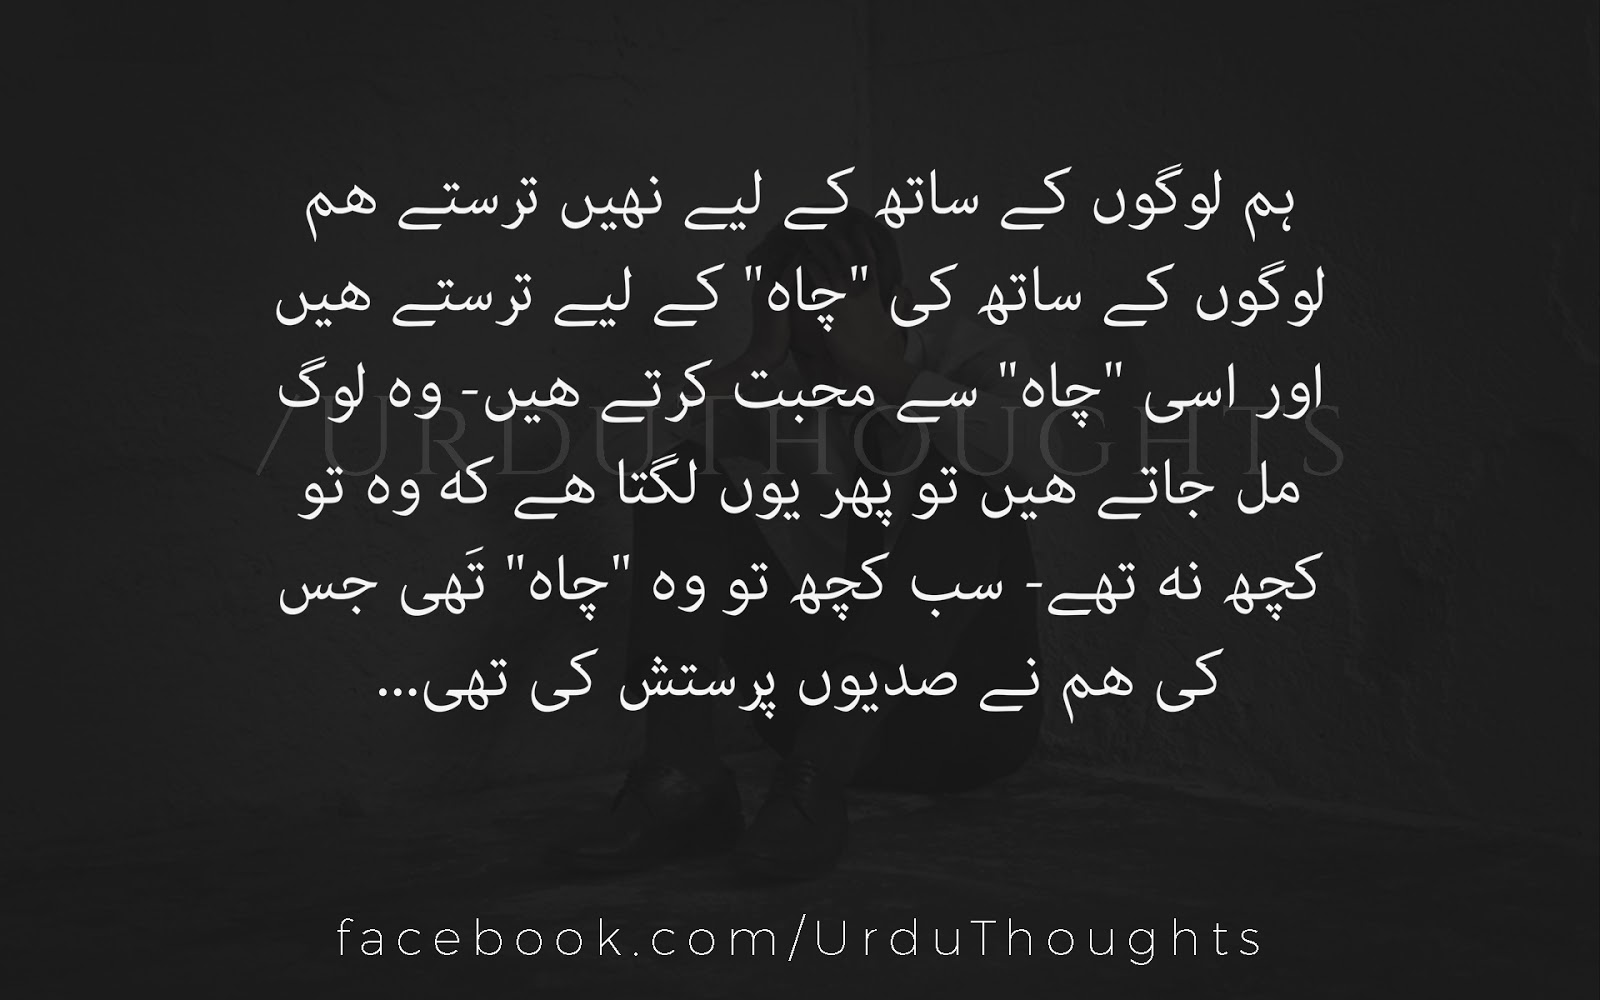 urdu quotes pictures for facebook urdu thoughts